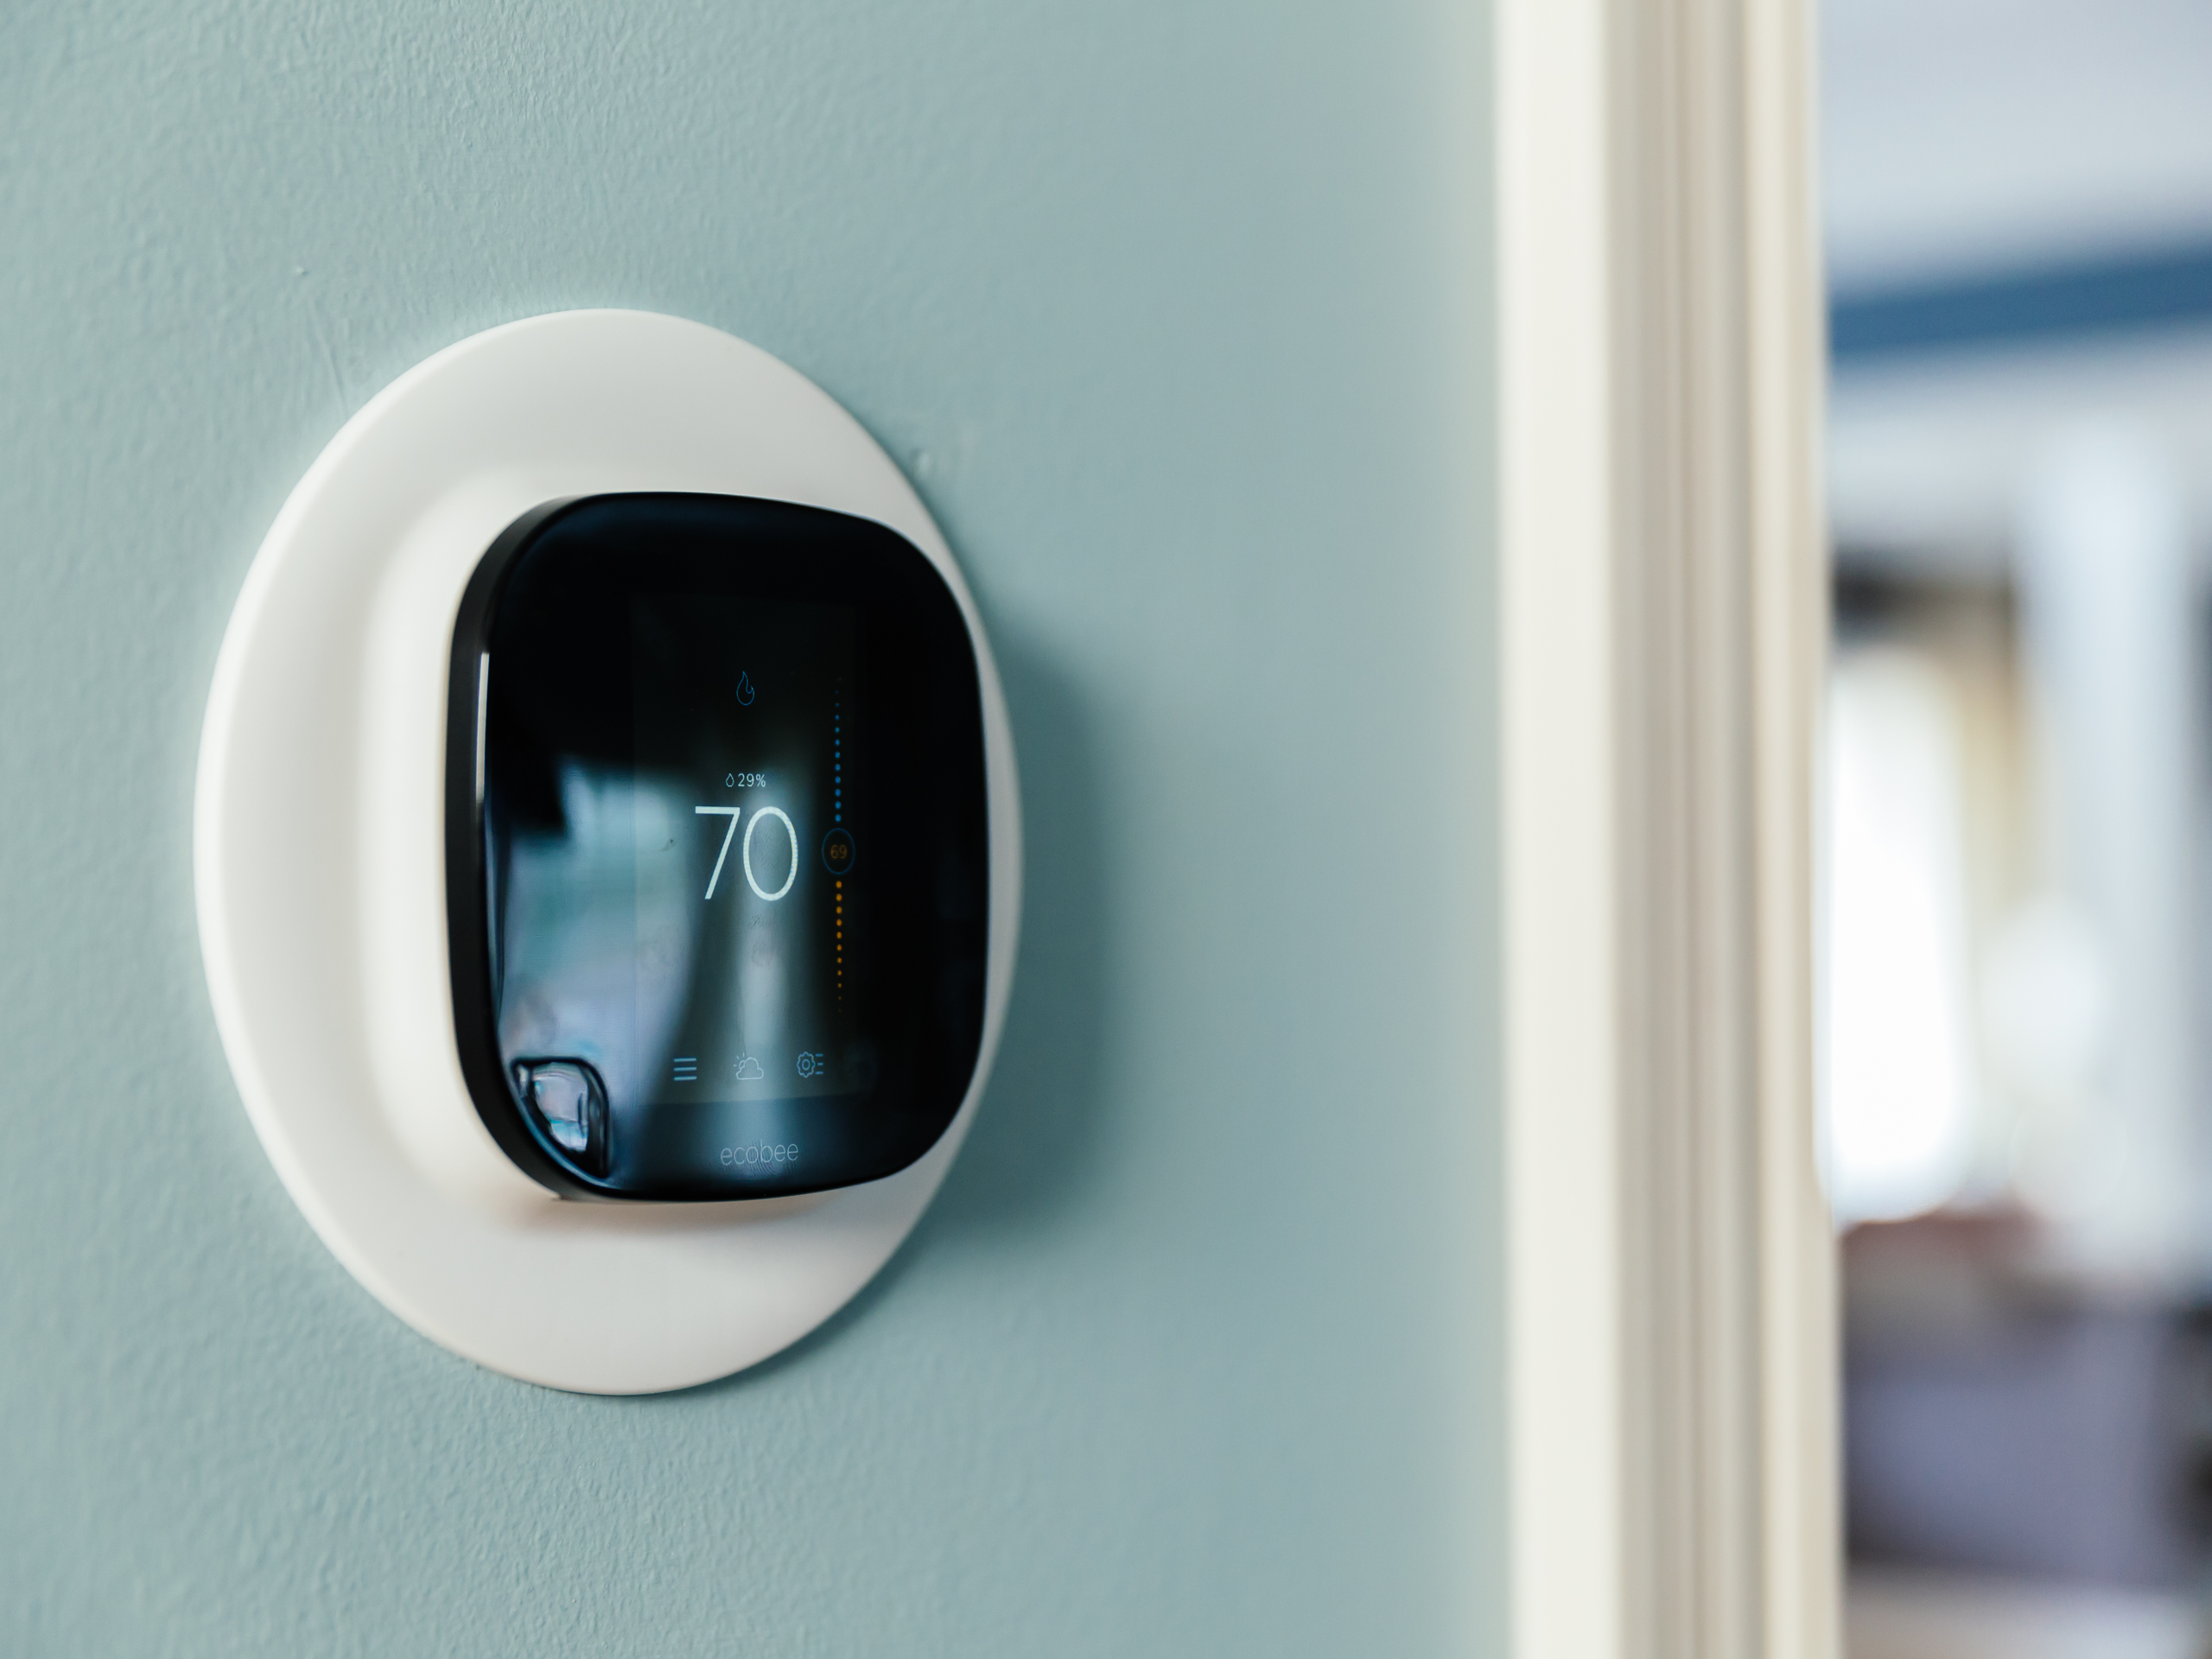 ecobee-build-out-shots-1.jpg